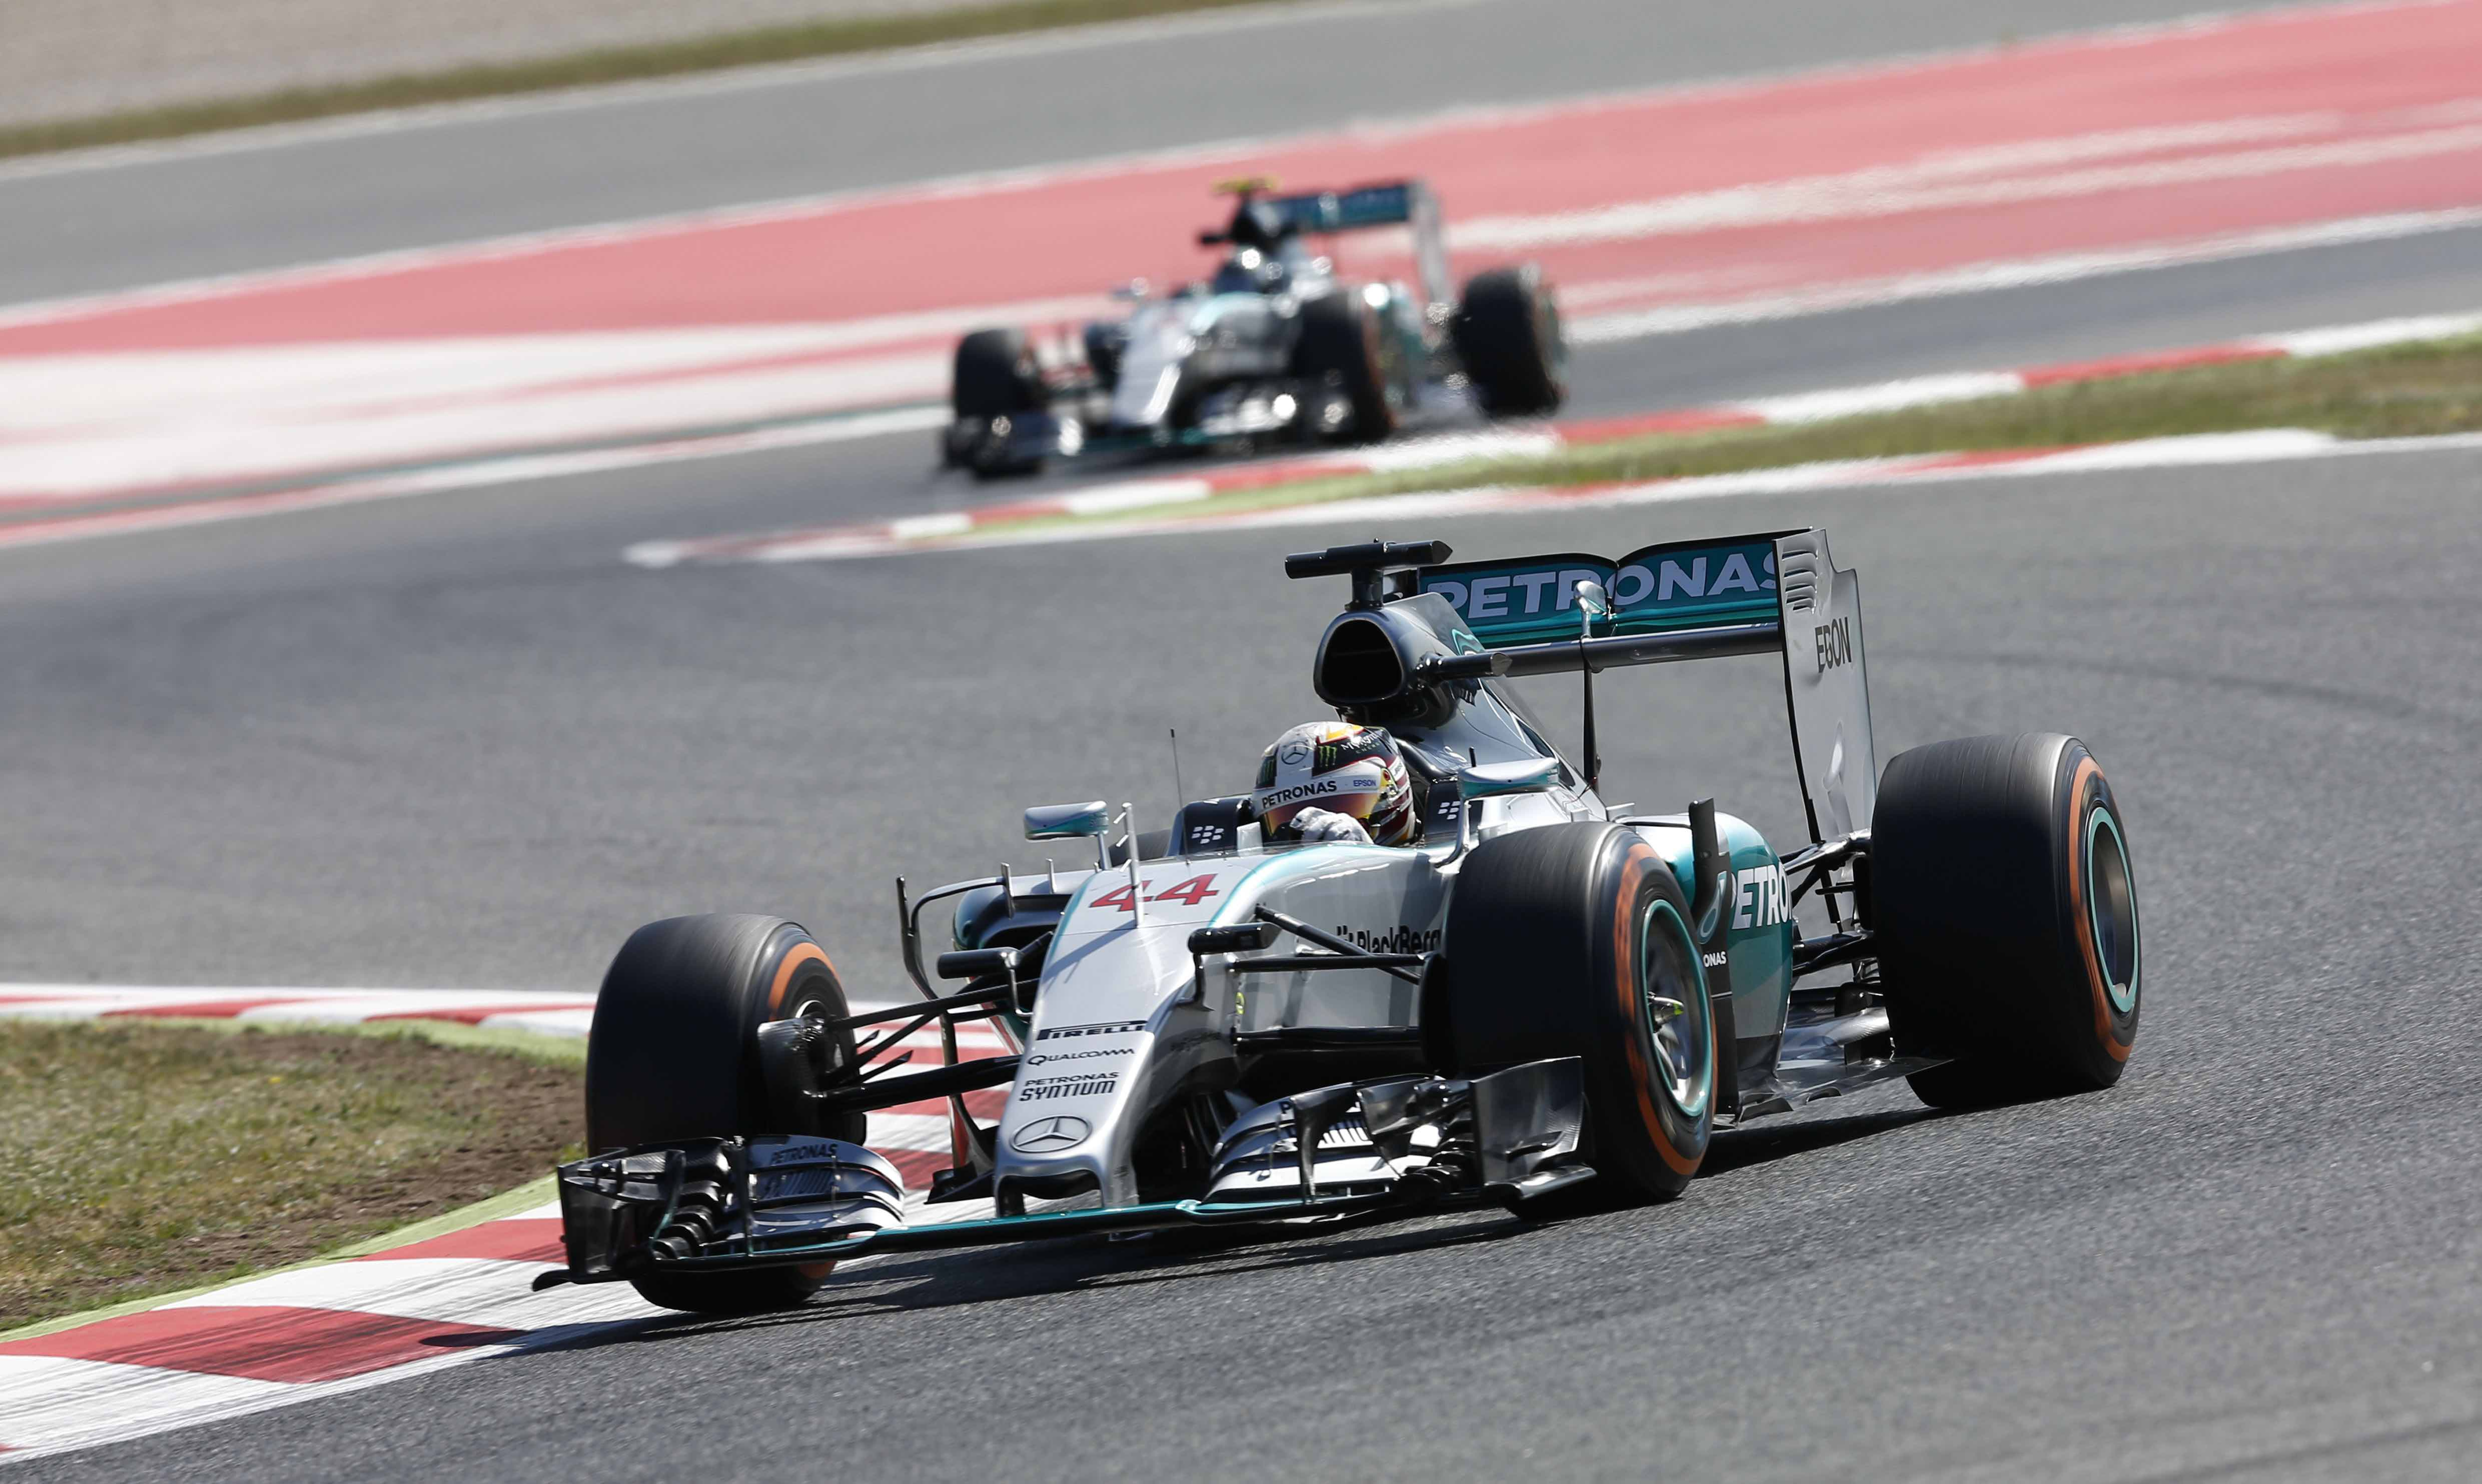 Lewis Hamilton Mercedes GP 2015 Spanish Grand Prix.jpg